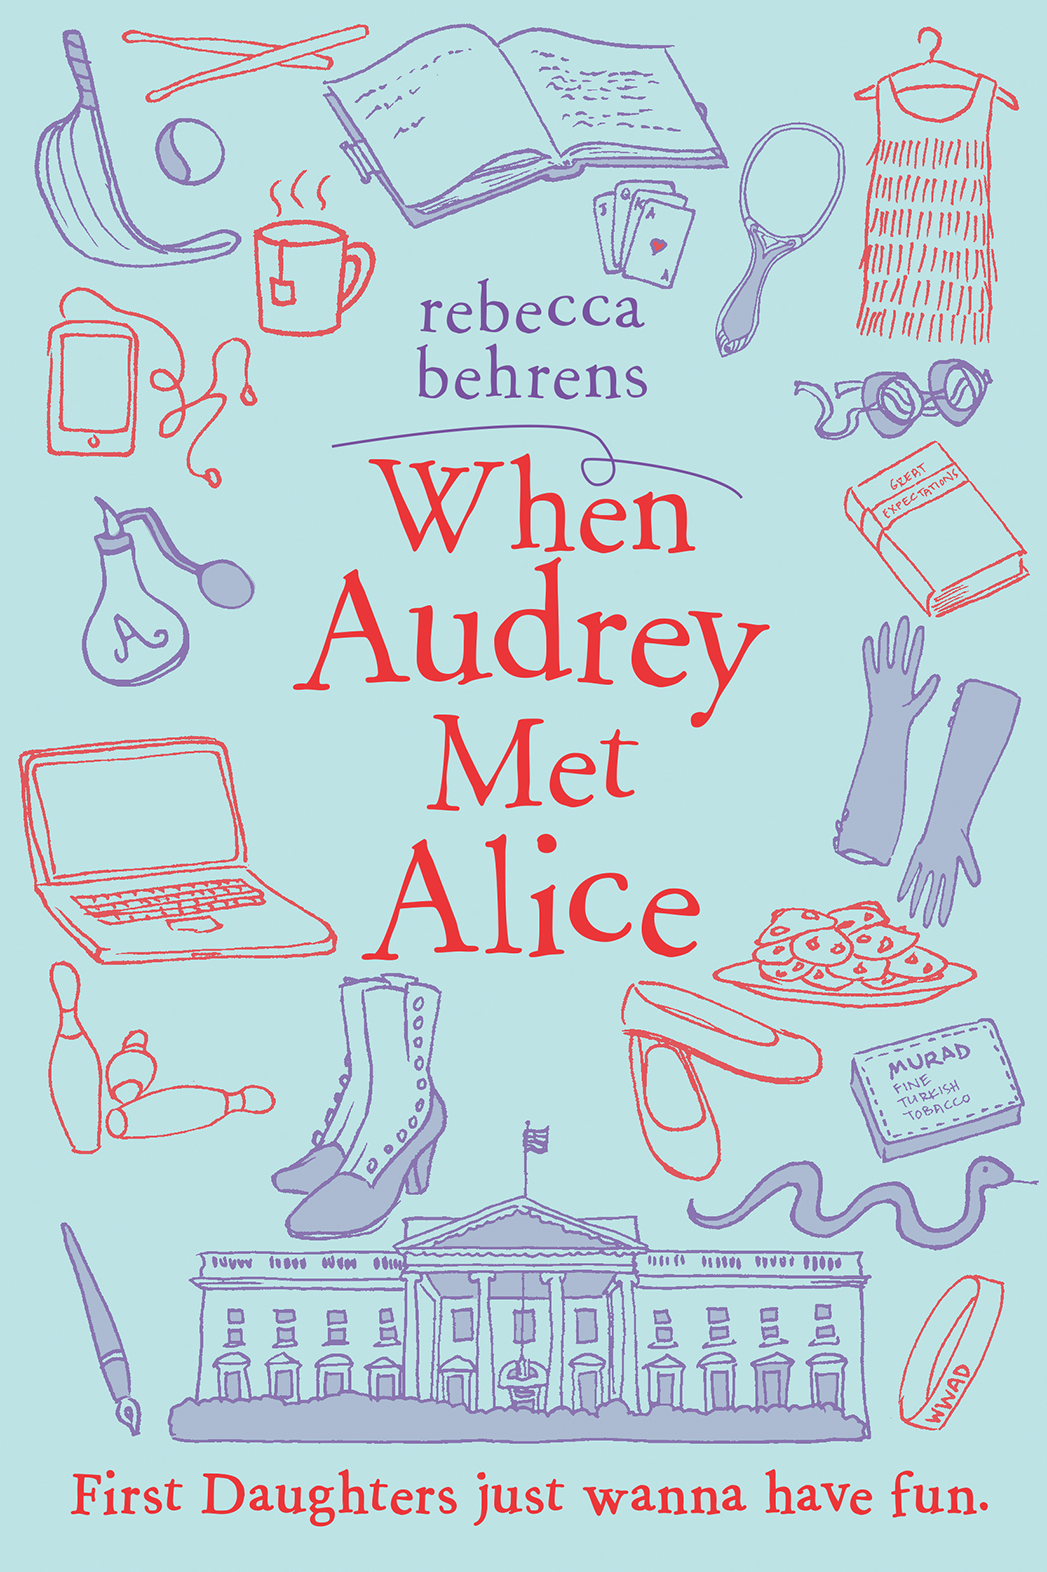 When Audrey Meets Alice book cover - P 2016